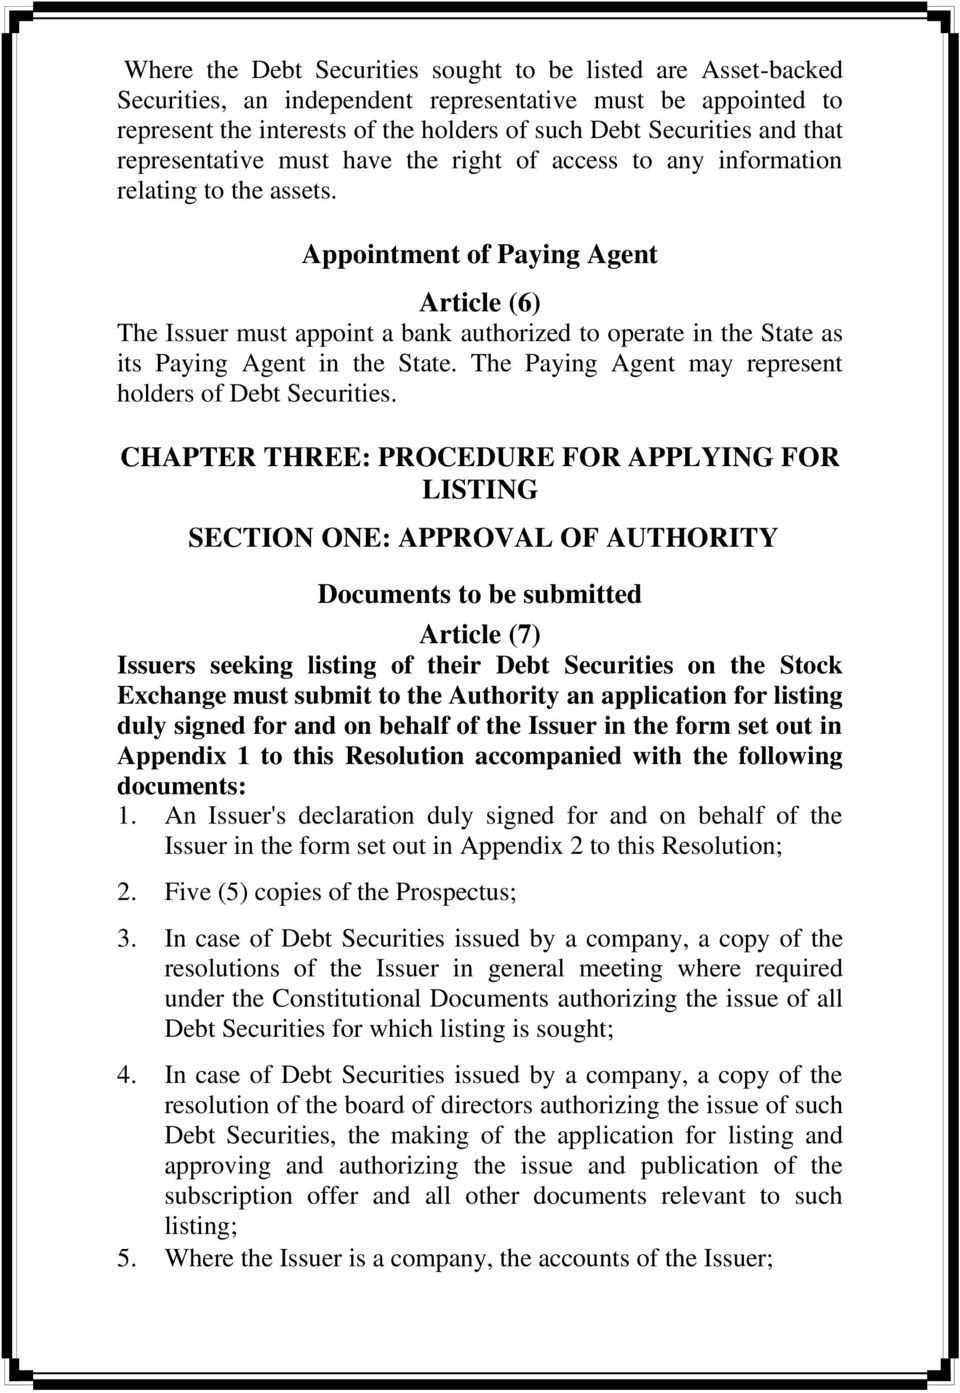 Appointment of Paying Agent Article (6) The Issuer must appoint a bank authorized to operate in the State as its Paying Agent in the State. The Paying Agent may represent holders of Debt Securities.